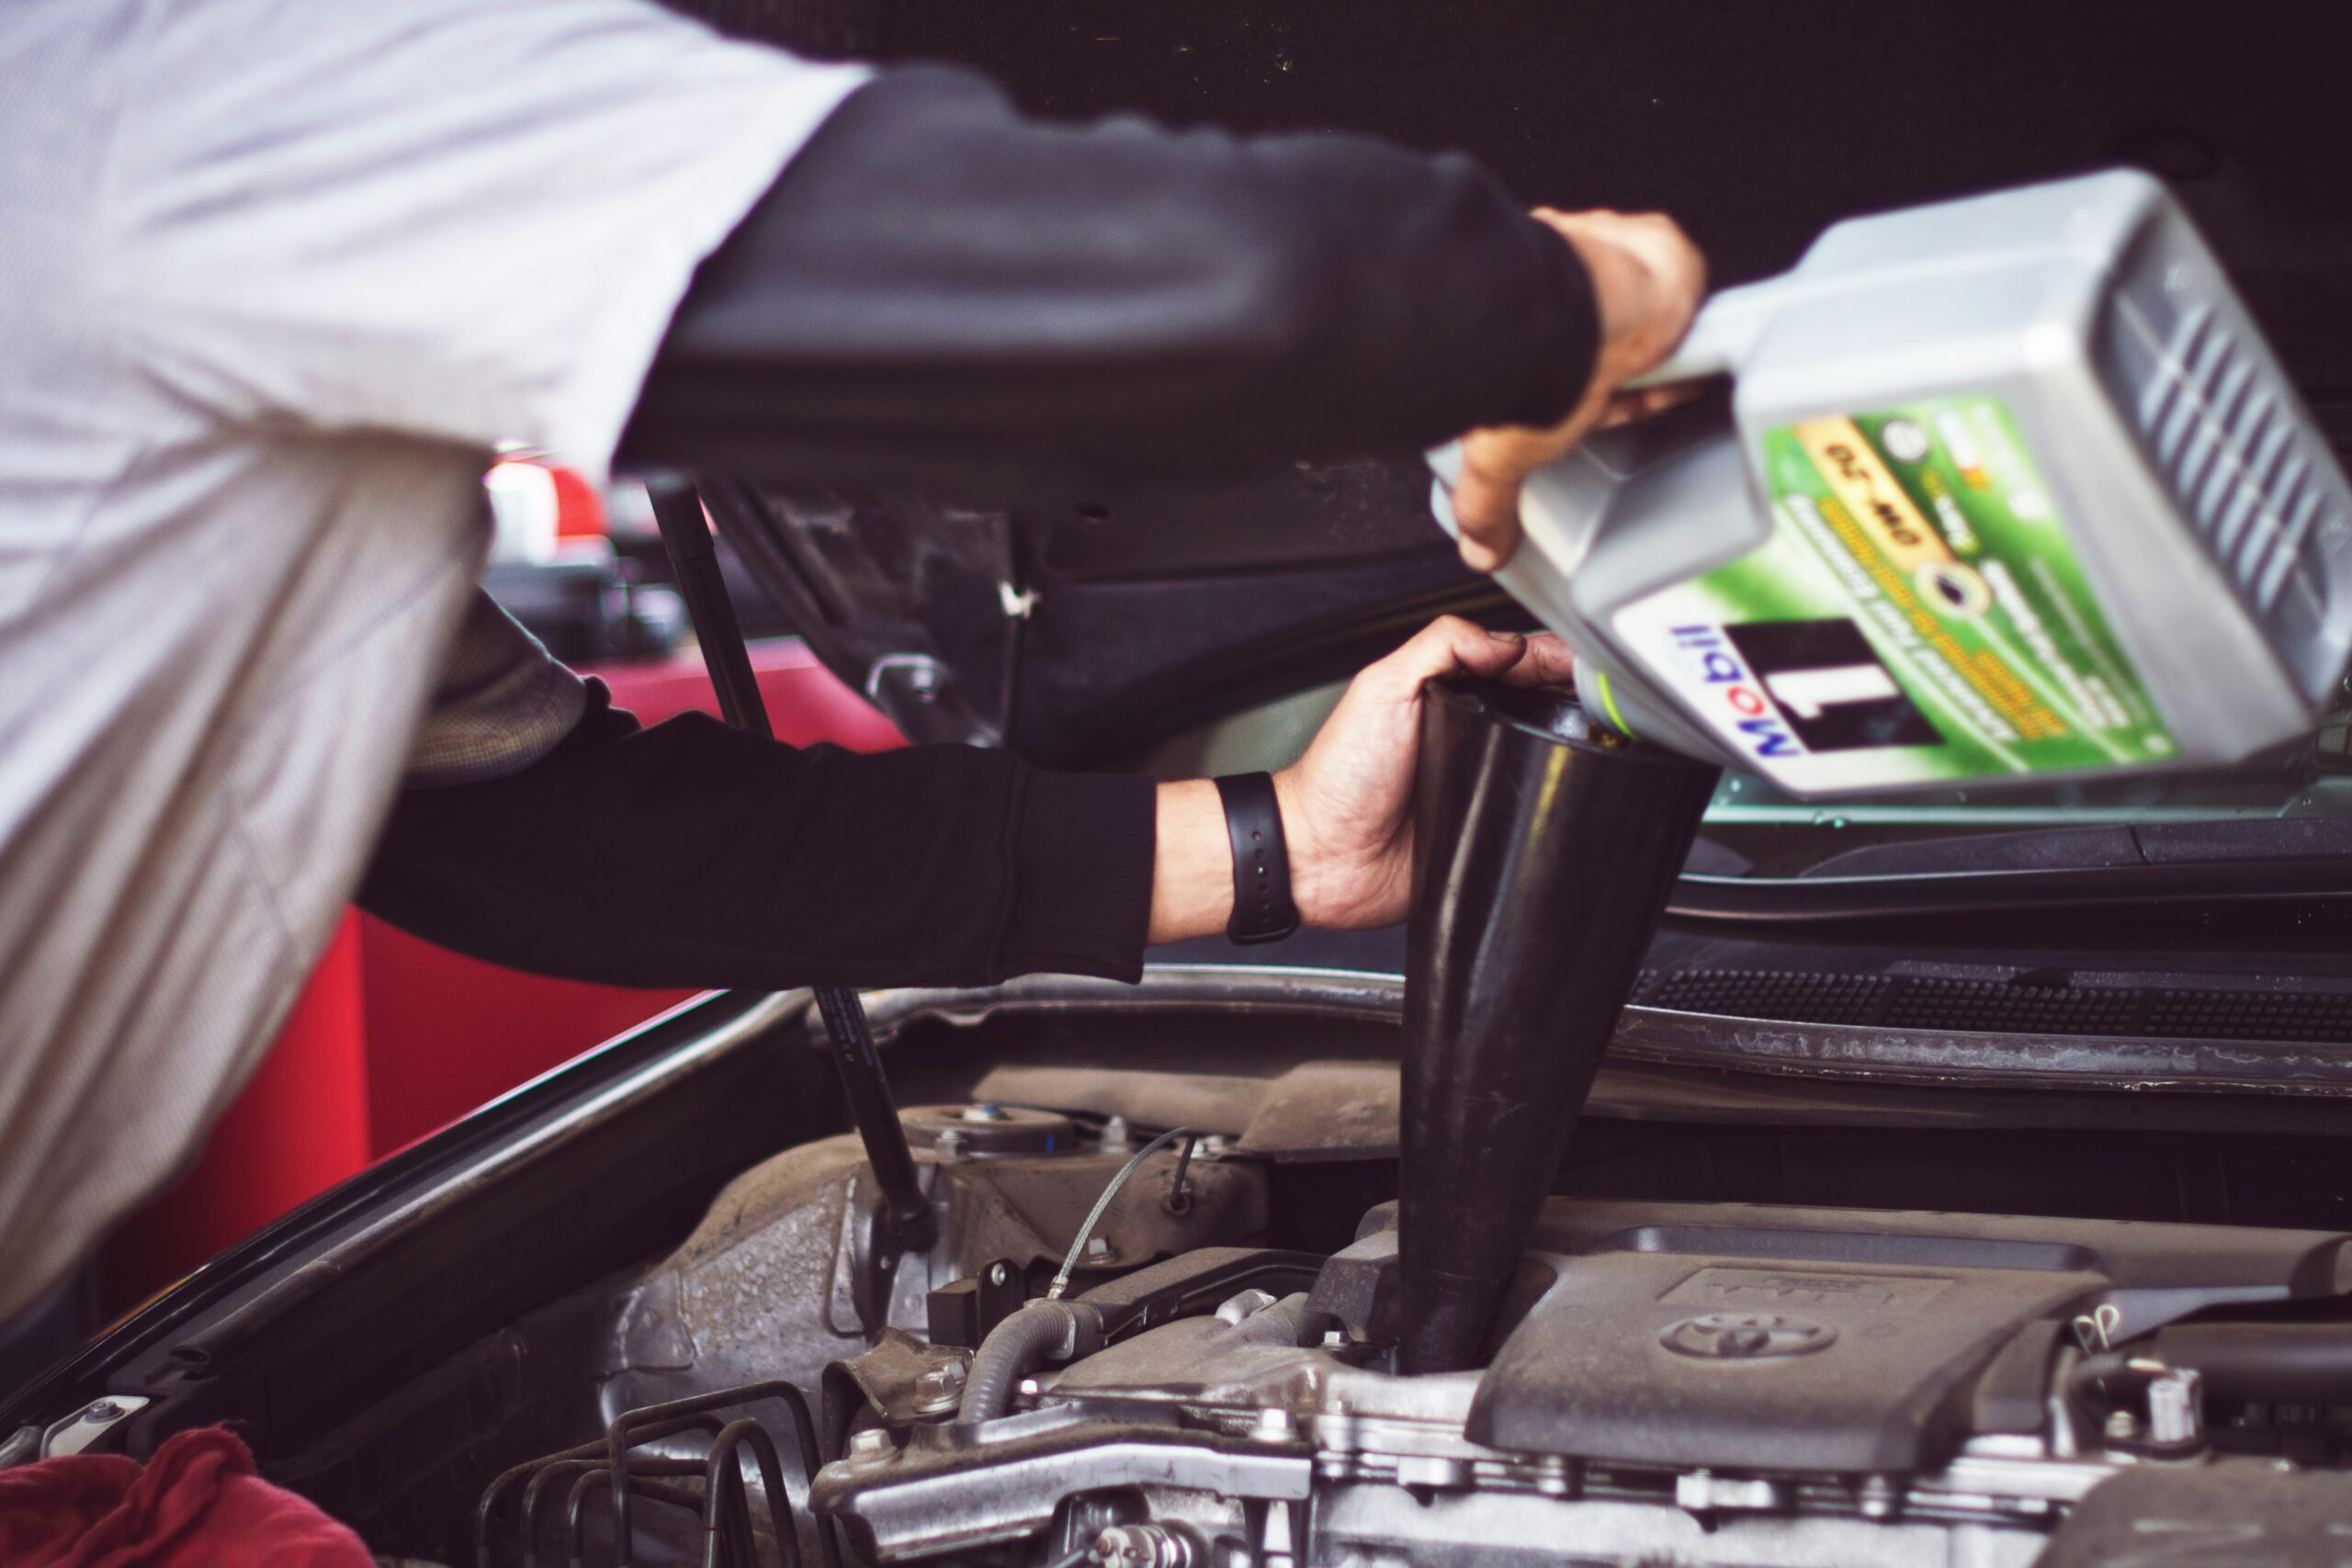 Why Is It Better to Trust Your Garage with an Oil Change? MILTA Technology